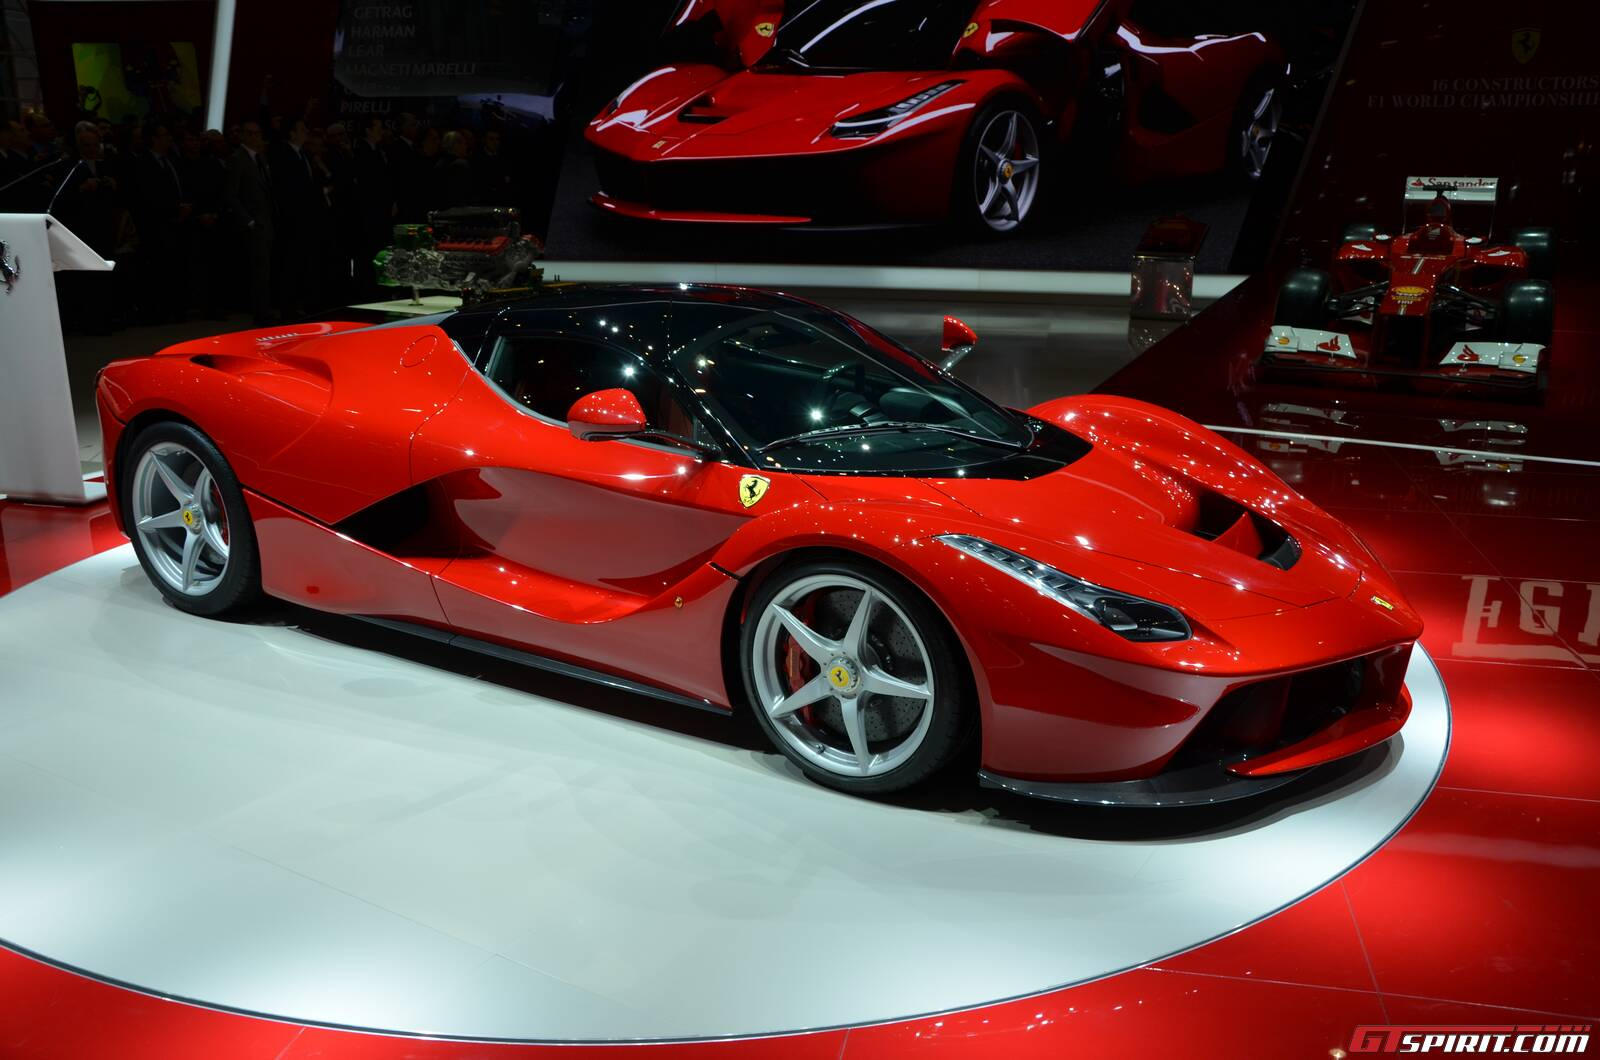 Video: Ferrari LaFerrari Testing on Track